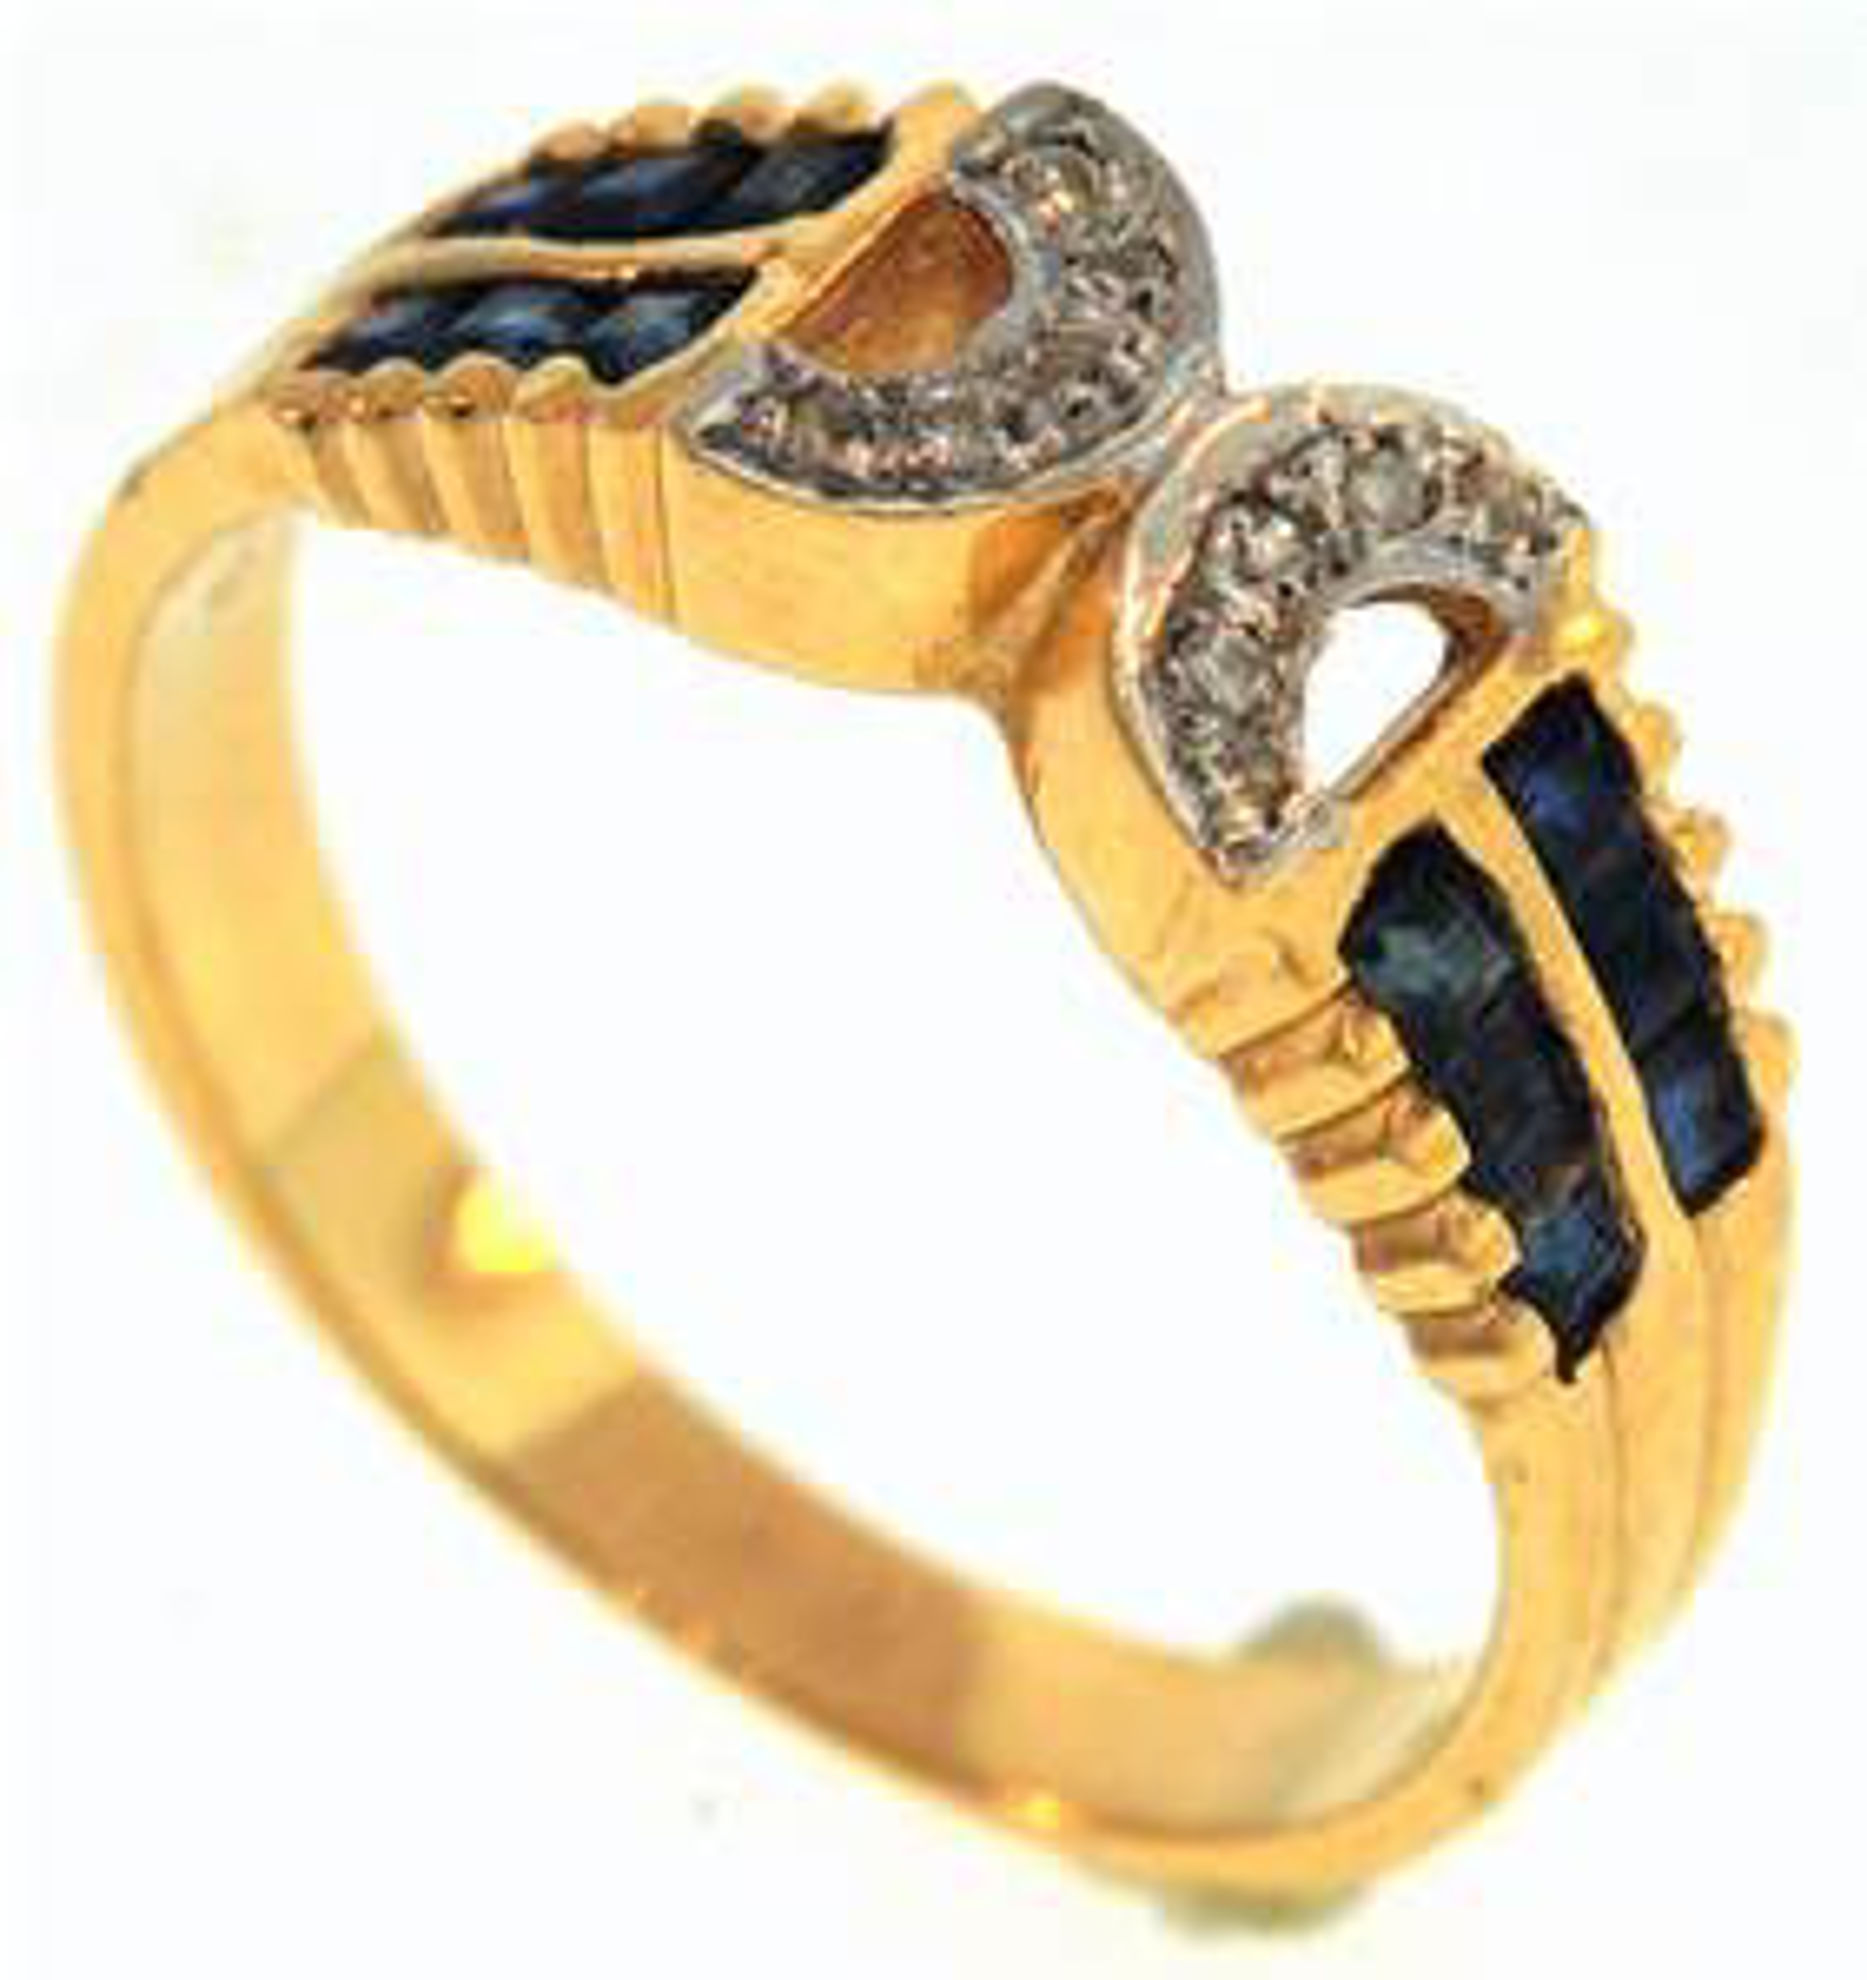 Picture of Ladies' Rings 14kt-1.8 DWT, 2.8 Grams